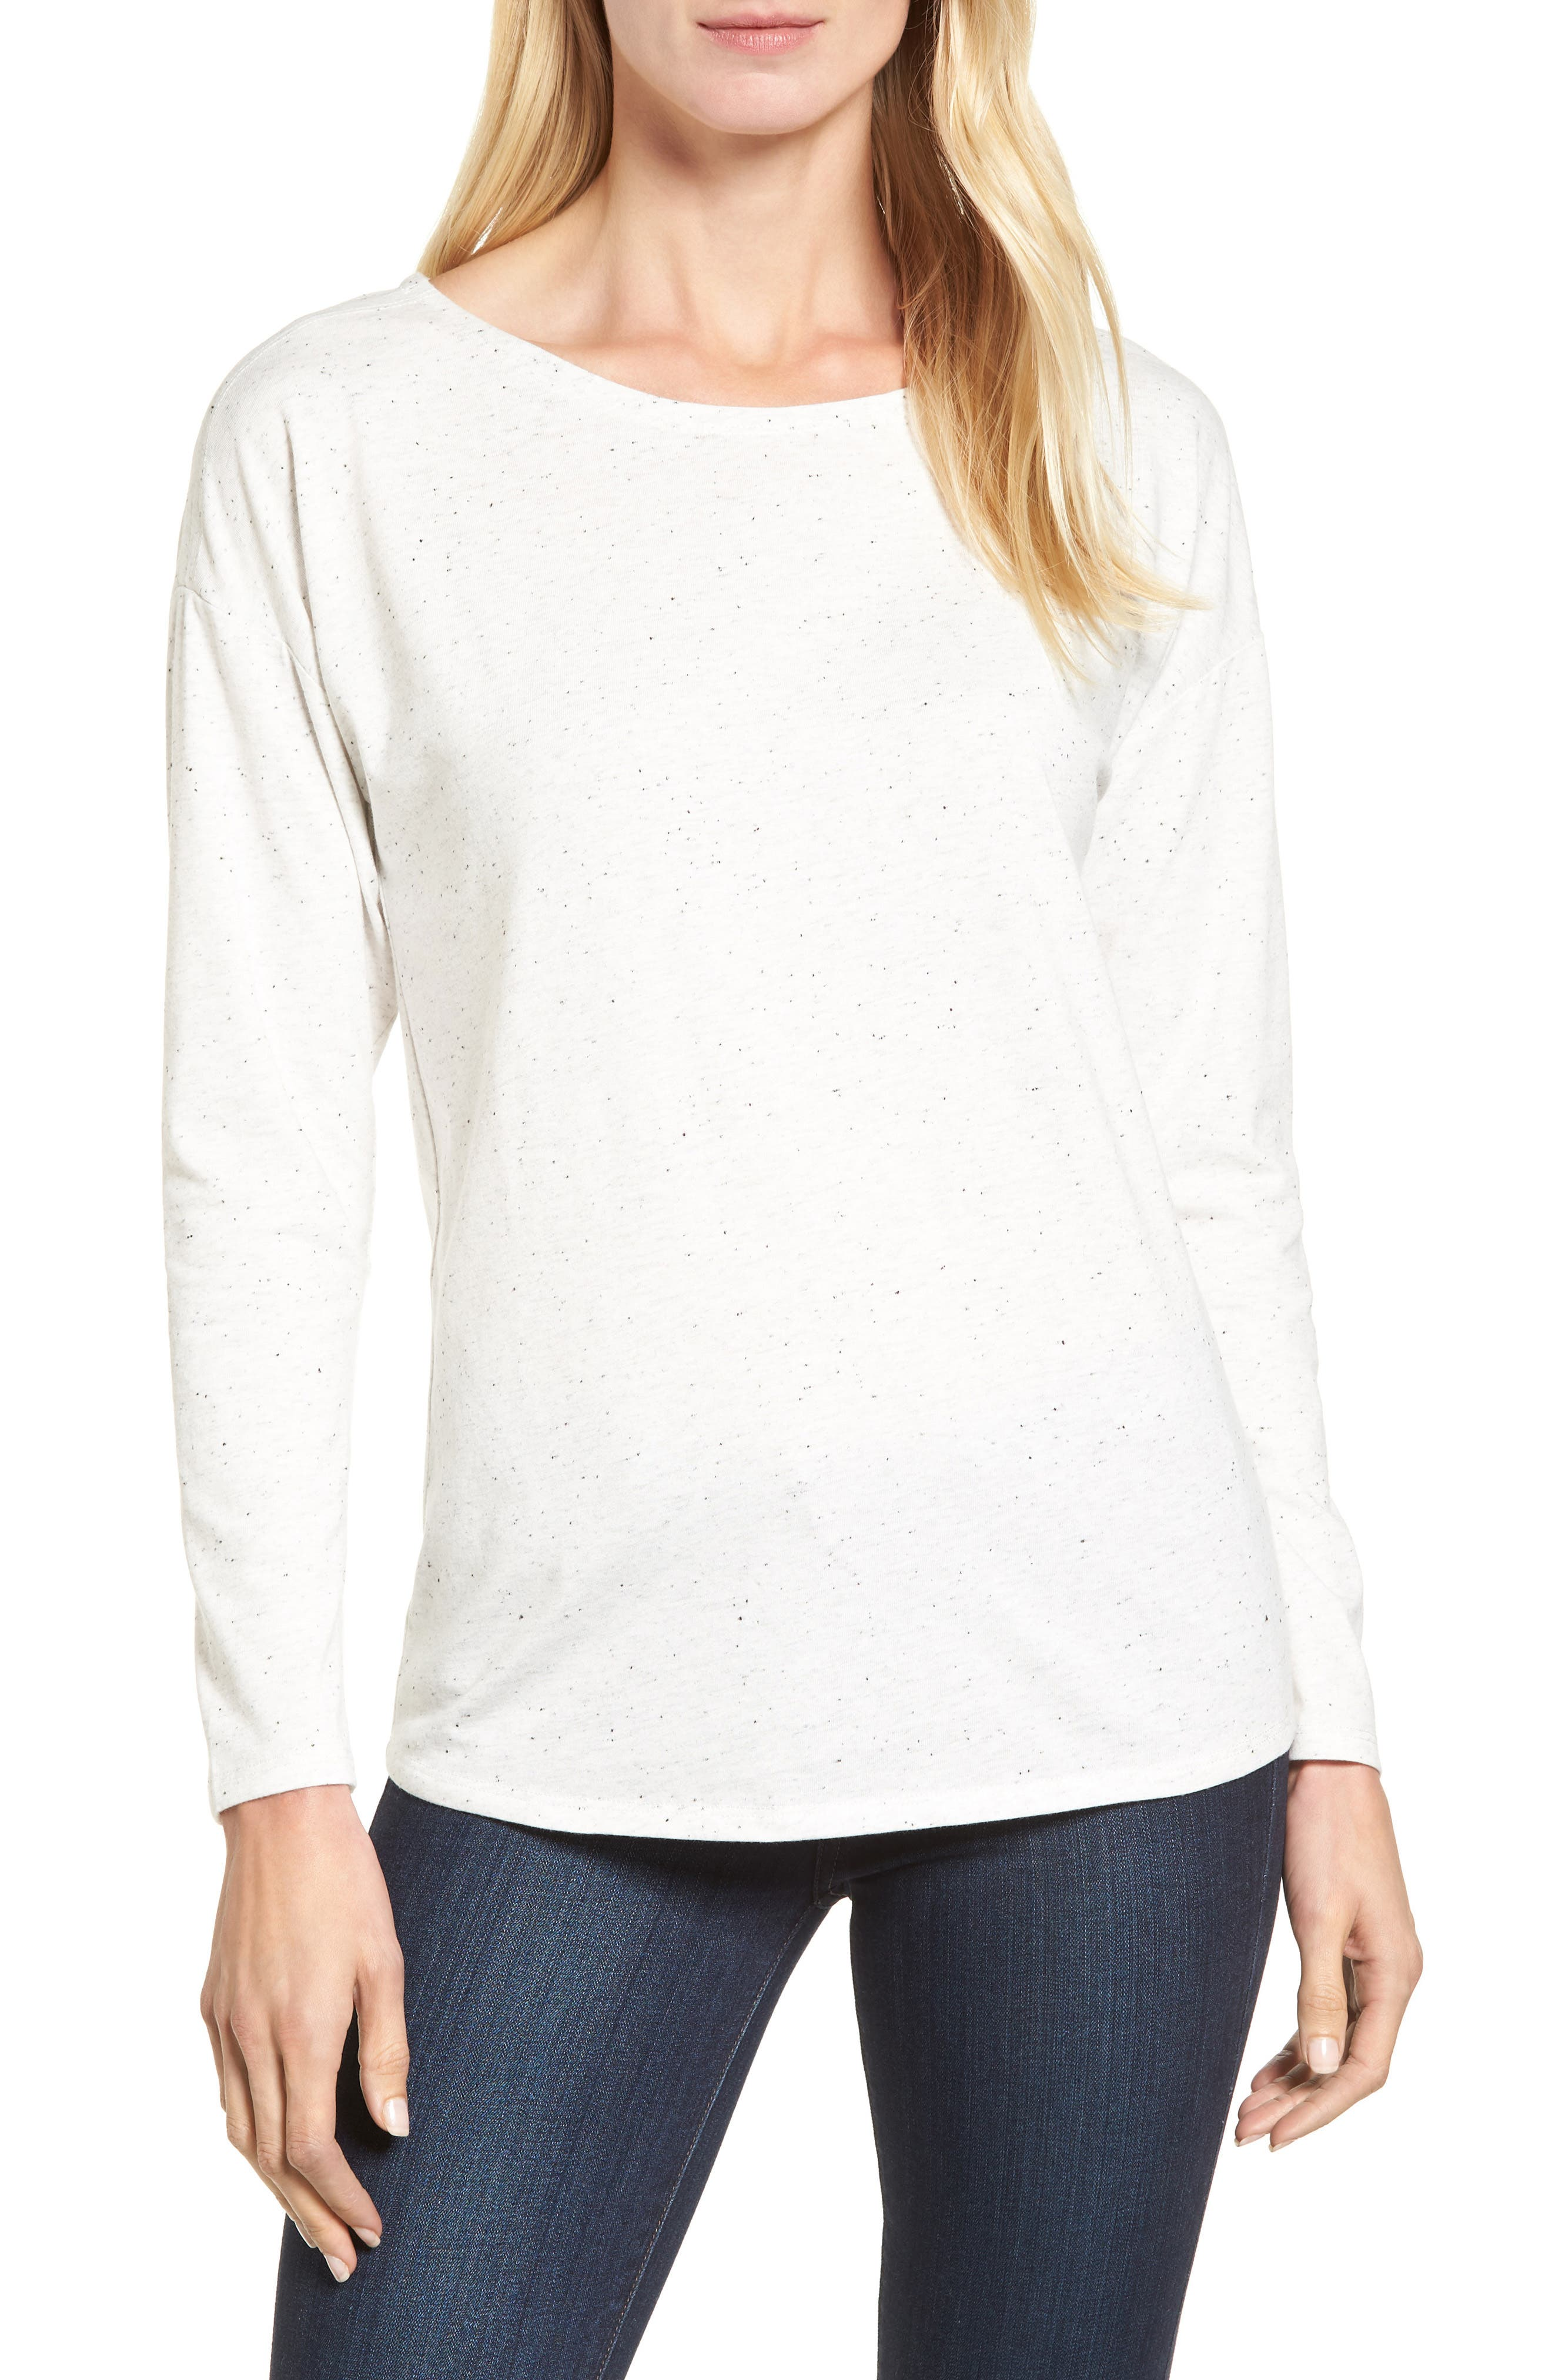 Main Image - NIC+ZOE Salt & Pepper Long Sleeve Top